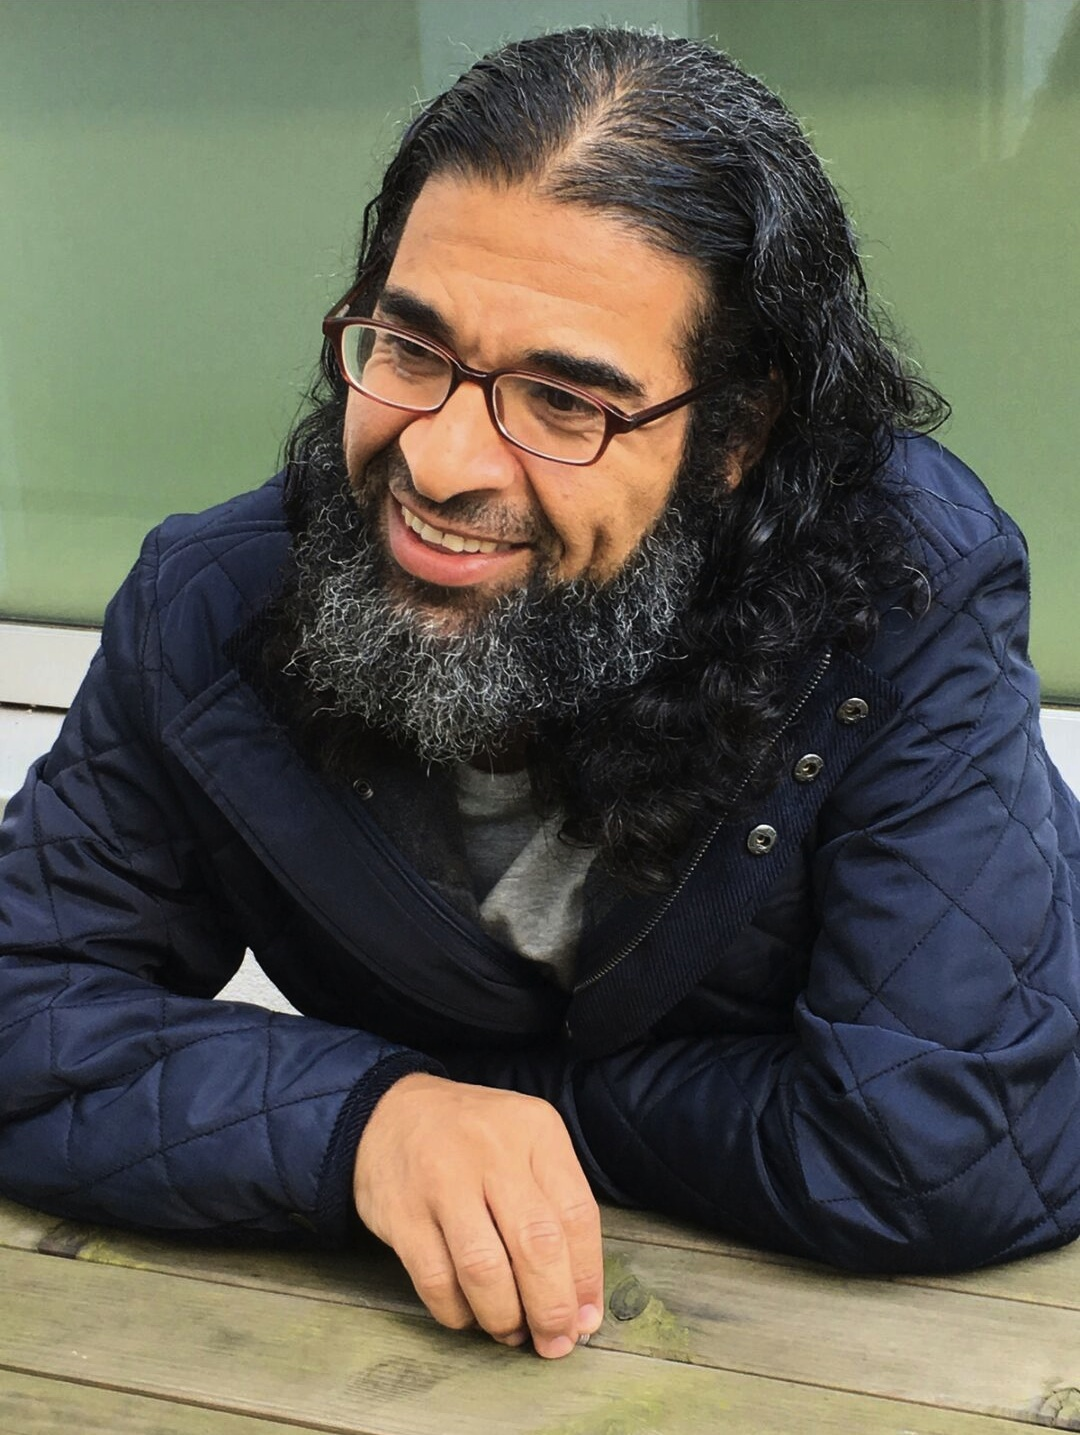 A photo that Shaker Aamer made available to the We Stand With Shaker campaign to thanks all his supporters who worked so hard to secure his release from Guantanamo.